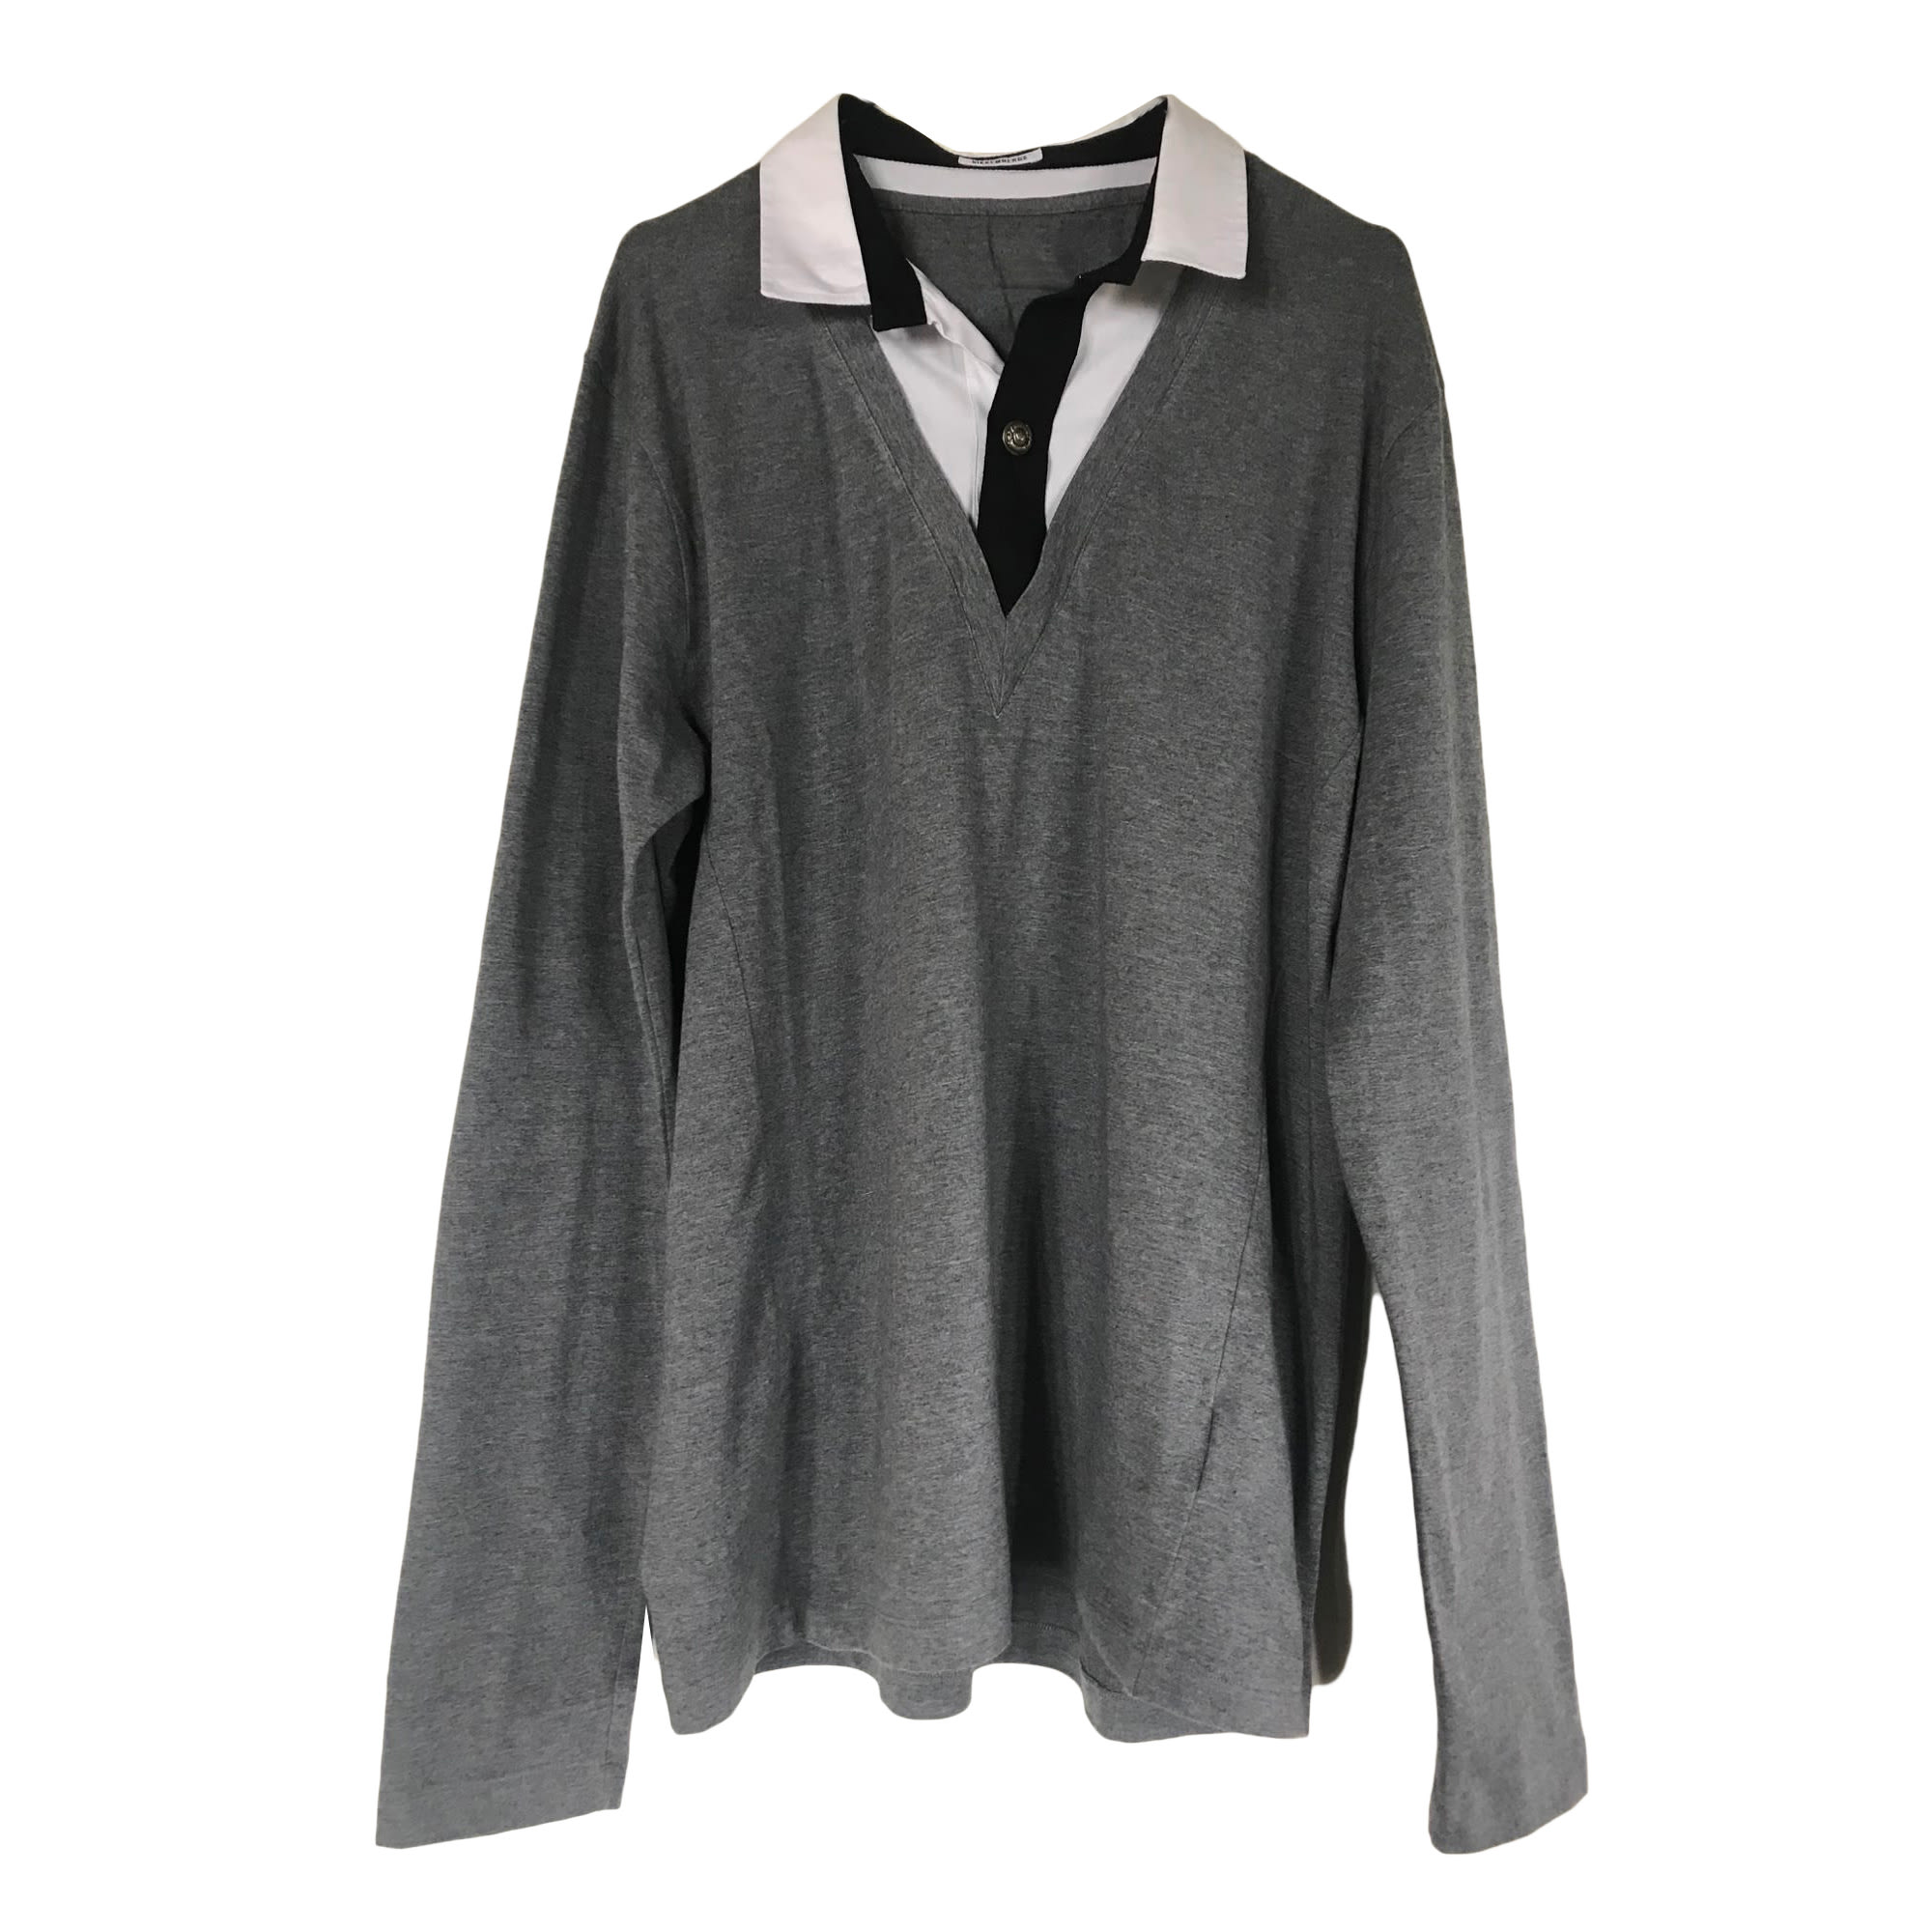 Polo DIRK BIKKEMBERGS Gris, anthracite